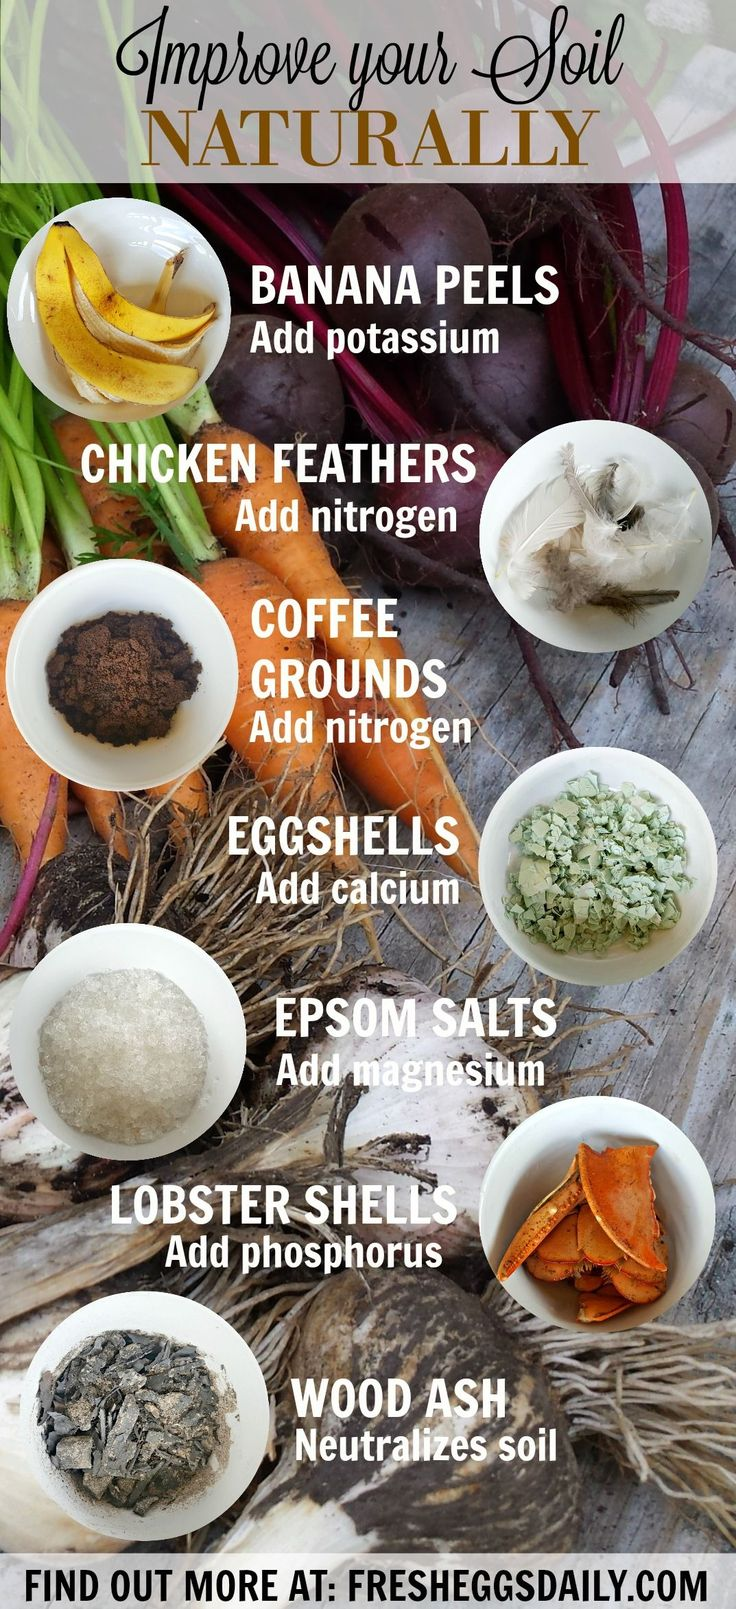 Instead of using commercial fertilizers and plant food, why not use some scraps from your kitchen that would otherwise end up in the trash or compost bin to amend and improve your garden soil naturally?